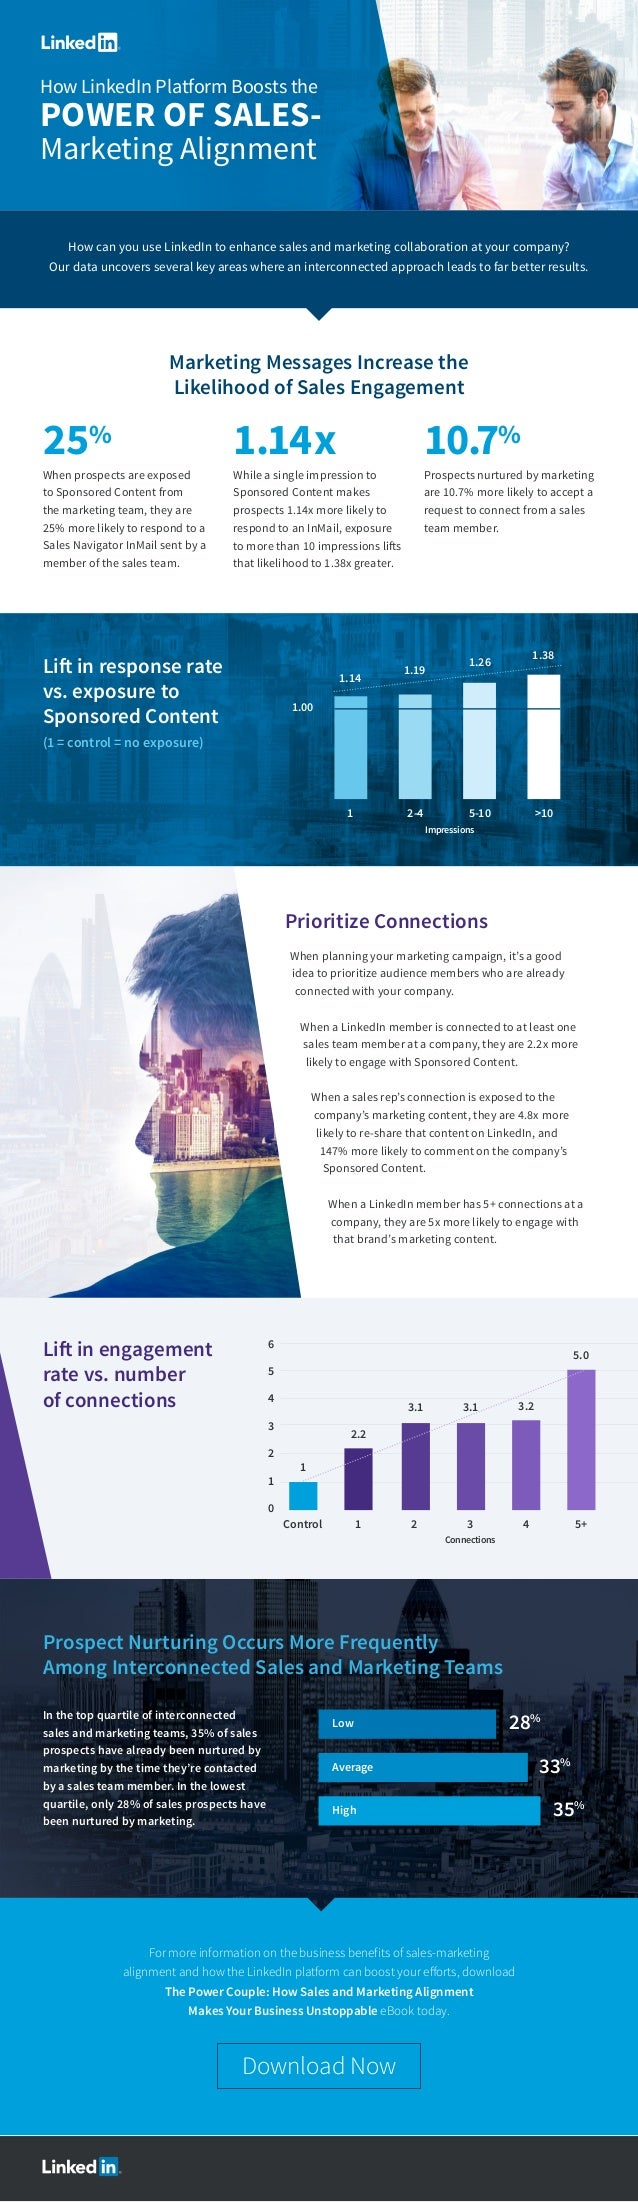 How LinkedIn Platform Boosts the POWER OF SALES- Marketing Alignment Marketing Messages Increase the Likelihood of Sales E...